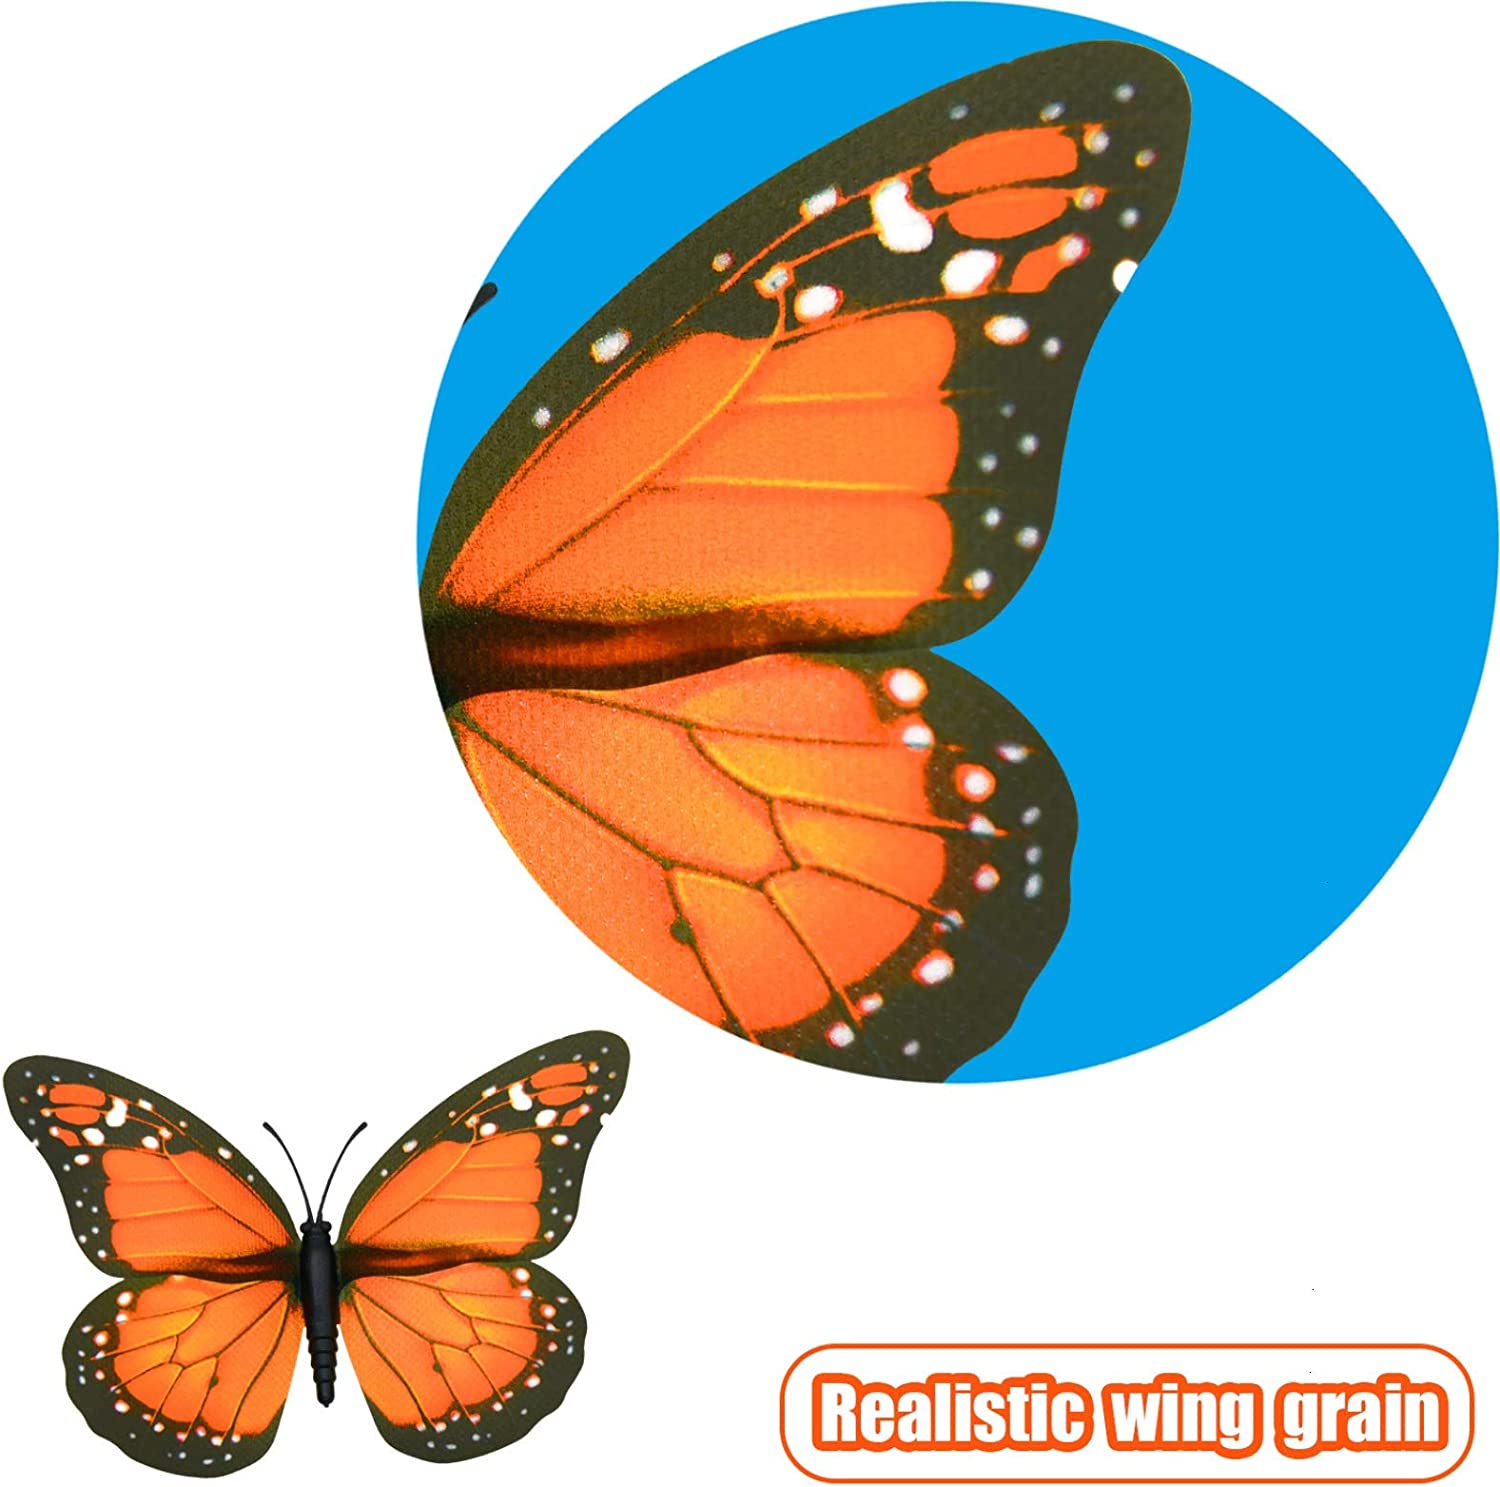 AQUEENLY Monarch Butterfly Decorations, 4.72'' Orange Premium Artificial Monarch Butterfly to Decorate for Craft, Home, Wall, Wedding, Party (12 Pcs): Home & Kitchen